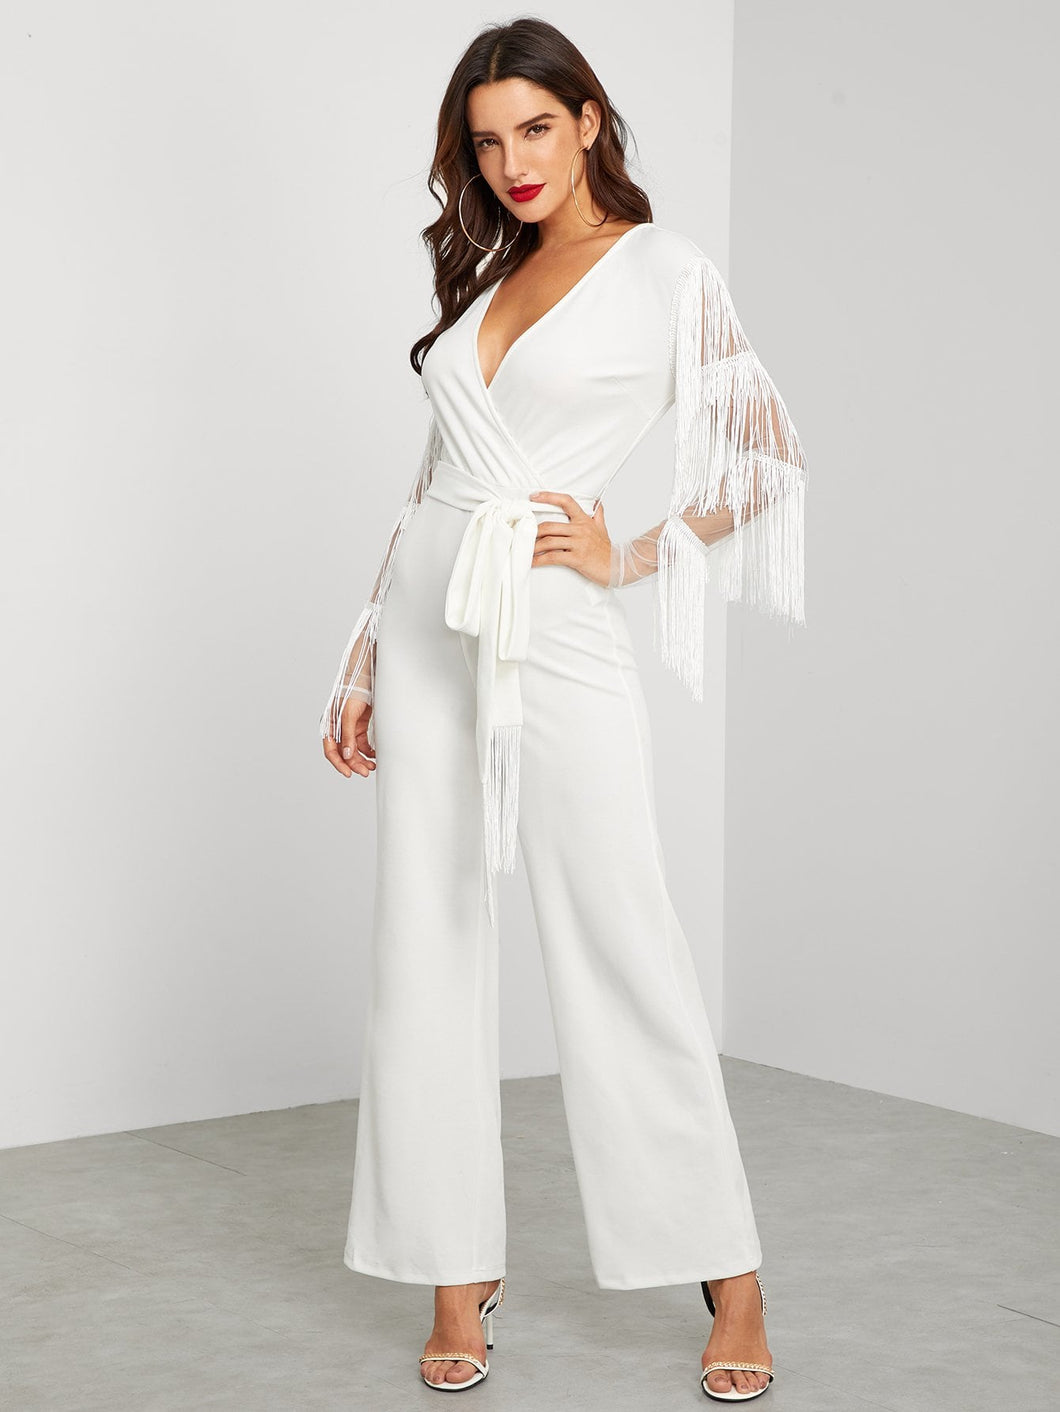 The Fringe Benefit Jumpsuit